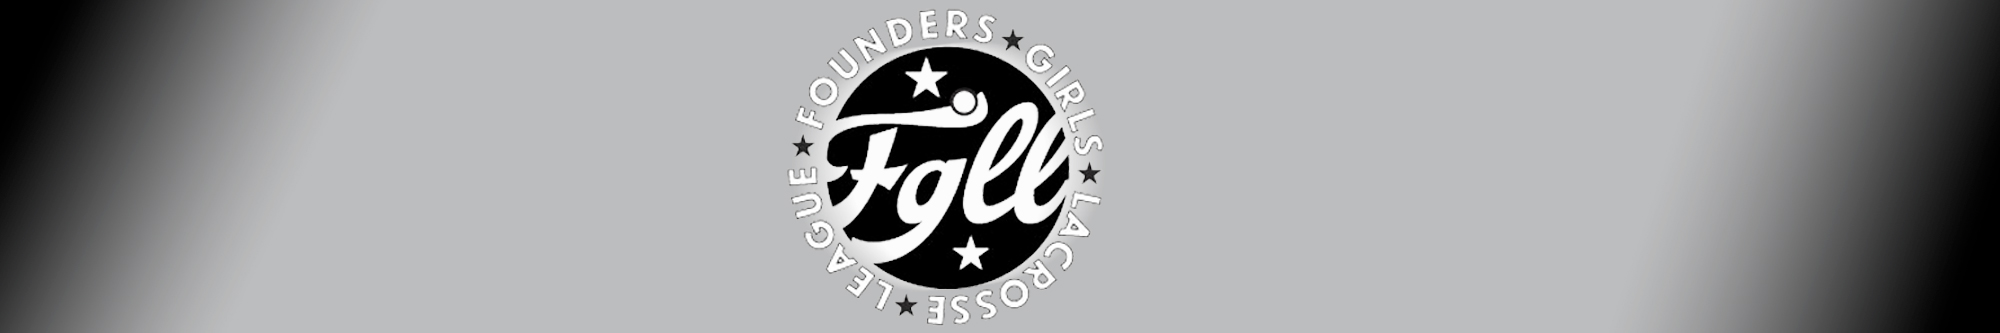 Founders Girls Lacrosse Store